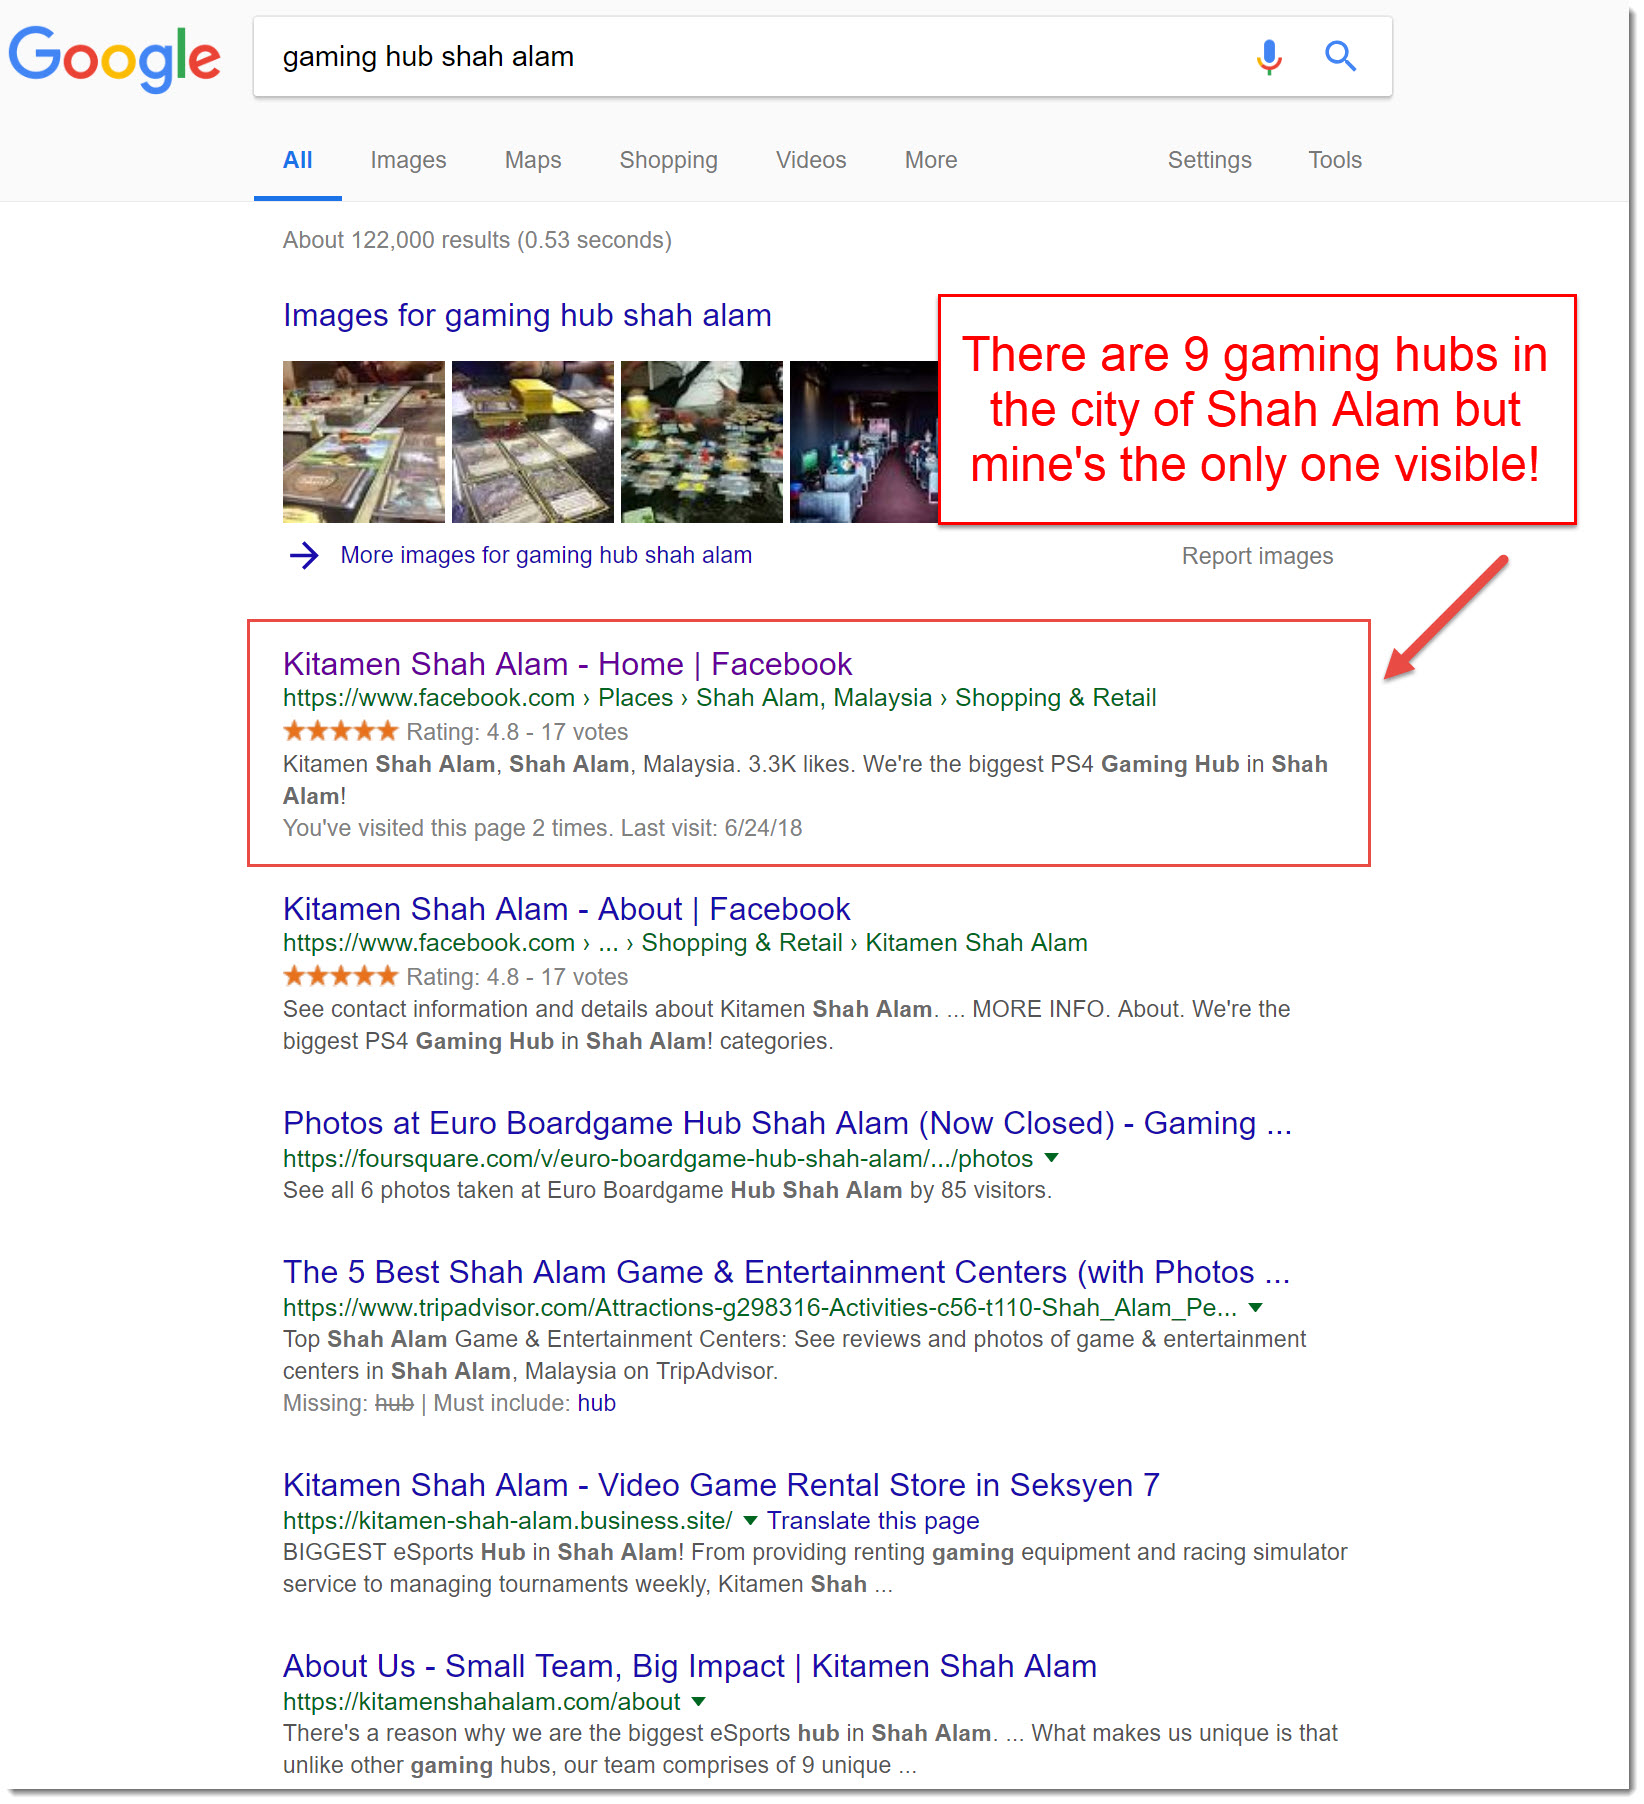 google search results for gaming hub shah alam